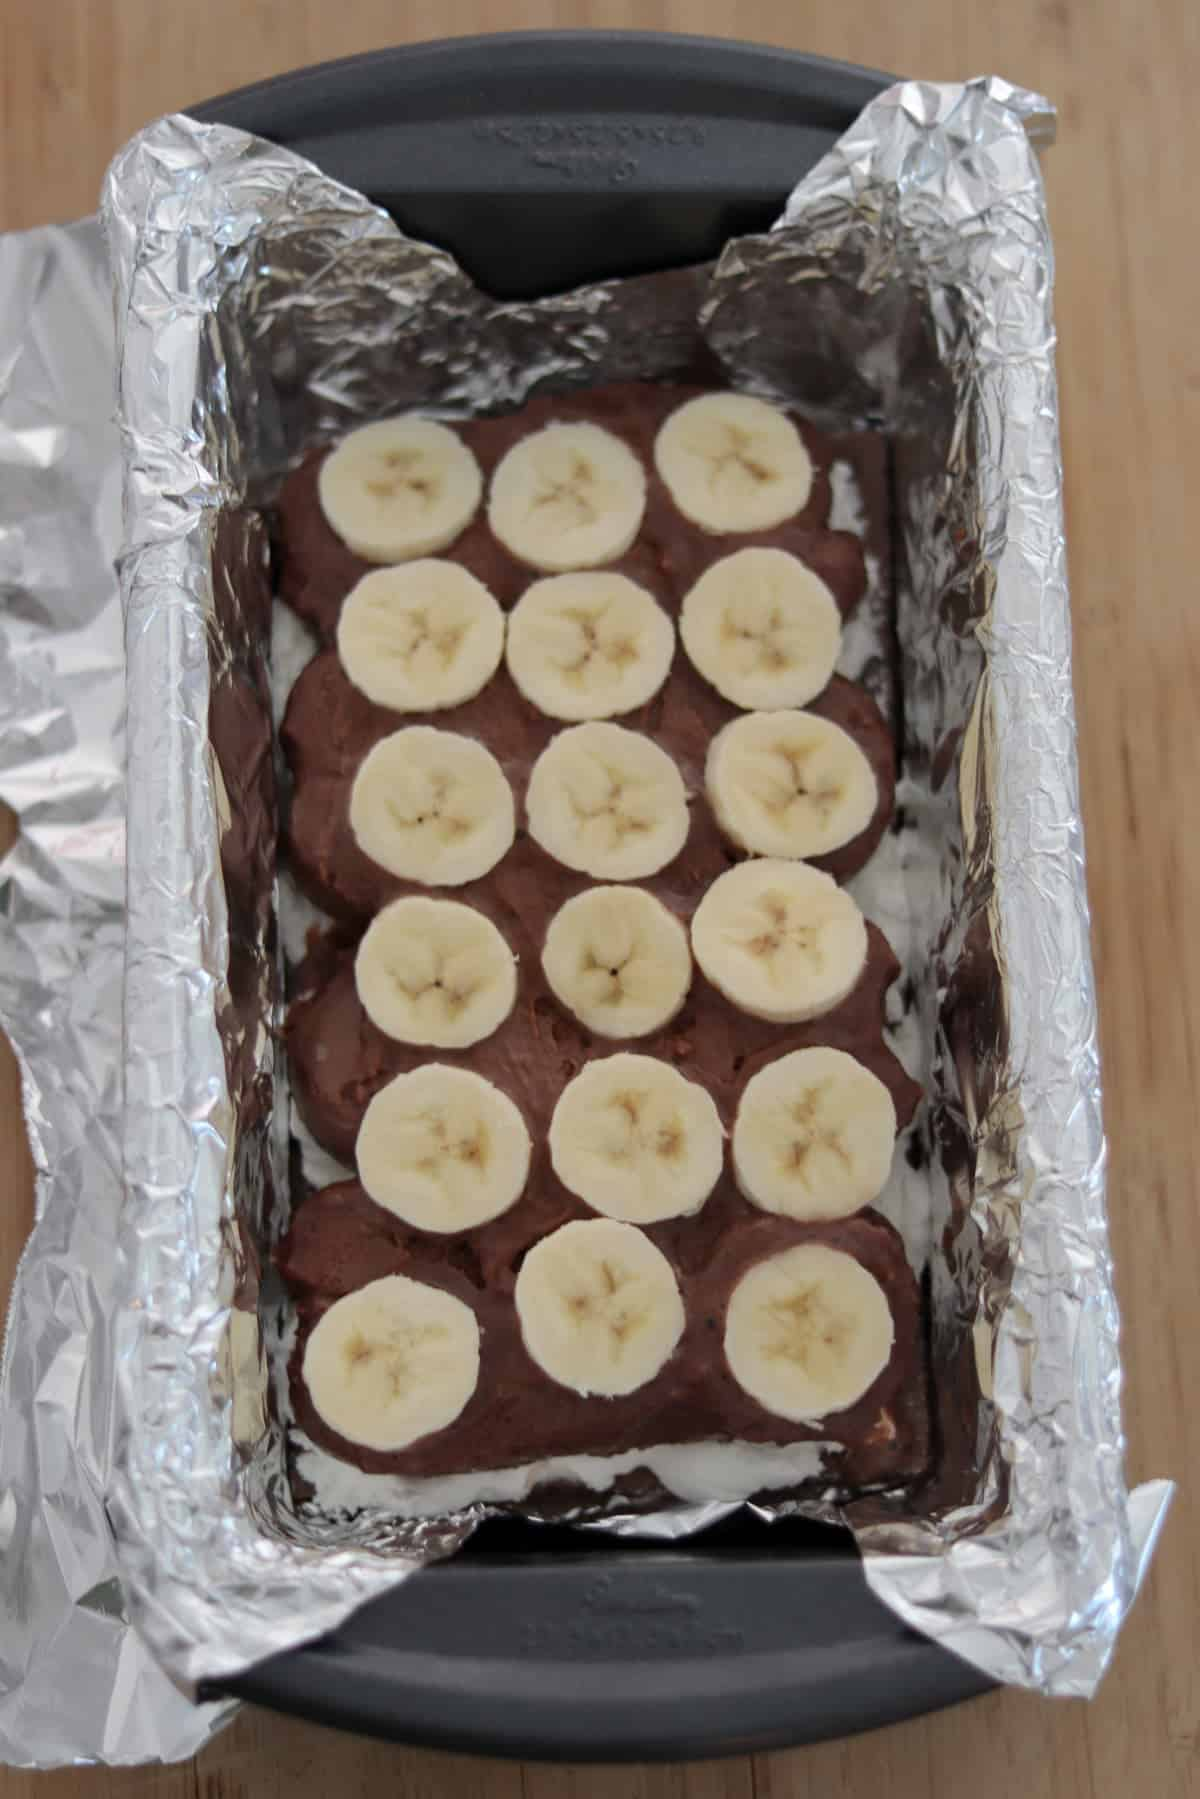 Foil-lined-loaf pan with chocolate ice cream fudge bars topped with banana slices.